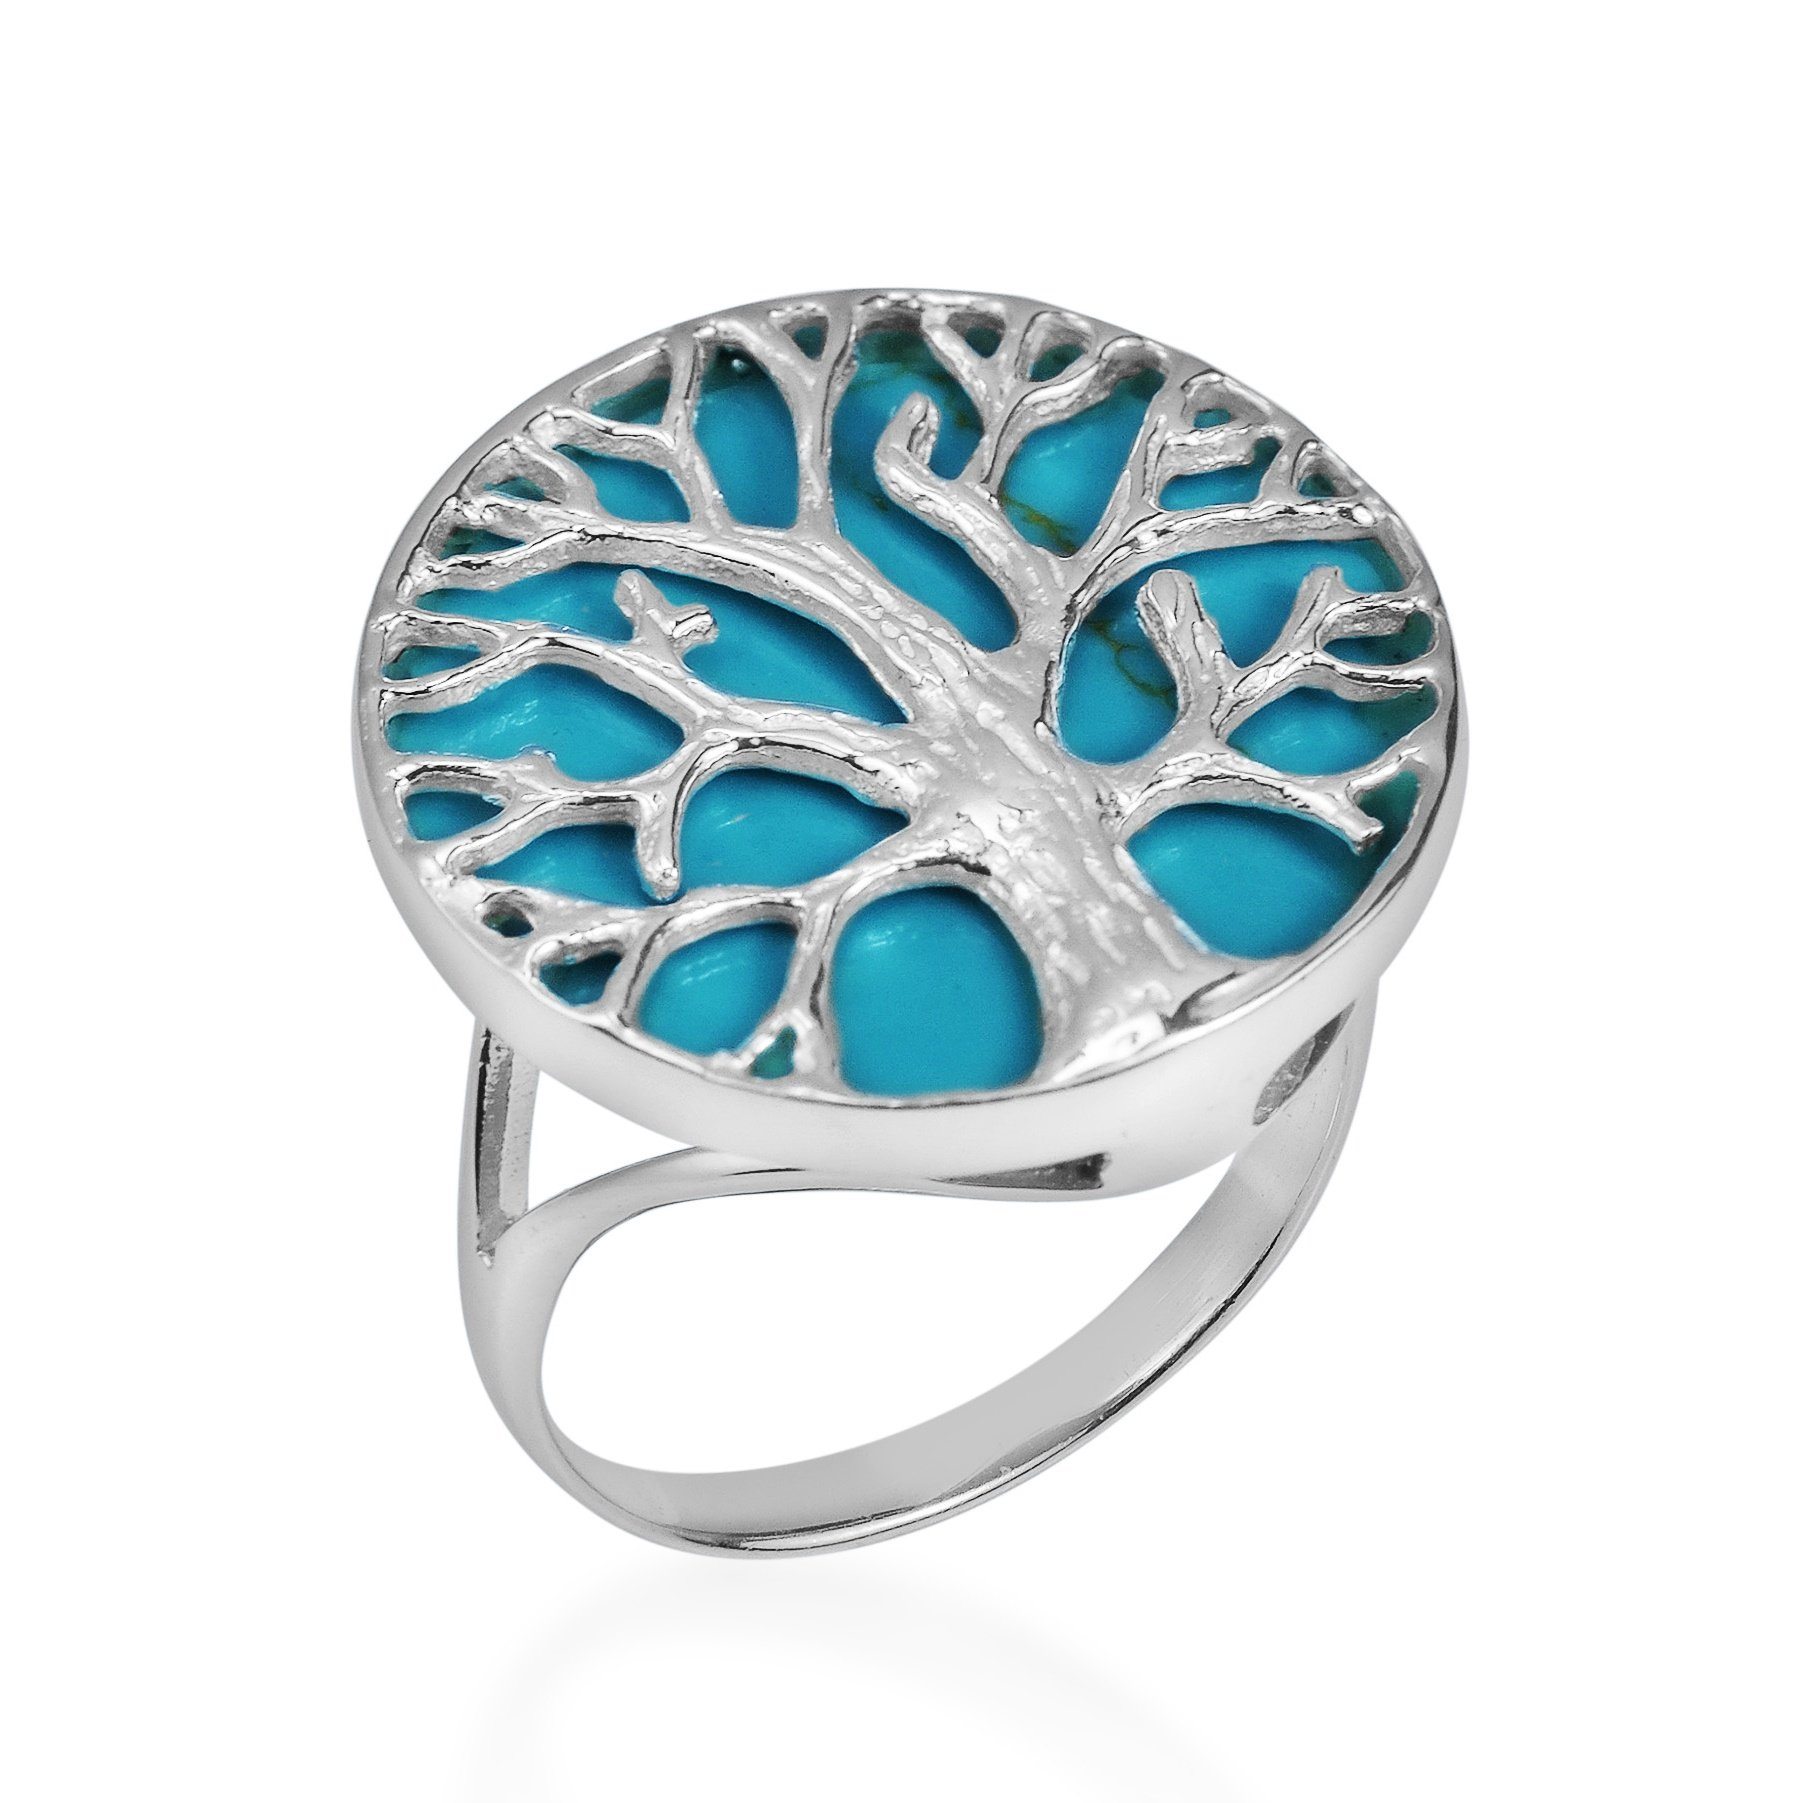 AeraVida Mystical Tree of Life Simulated Turquoise Inlay .925 Sterling Silver Ring (7)